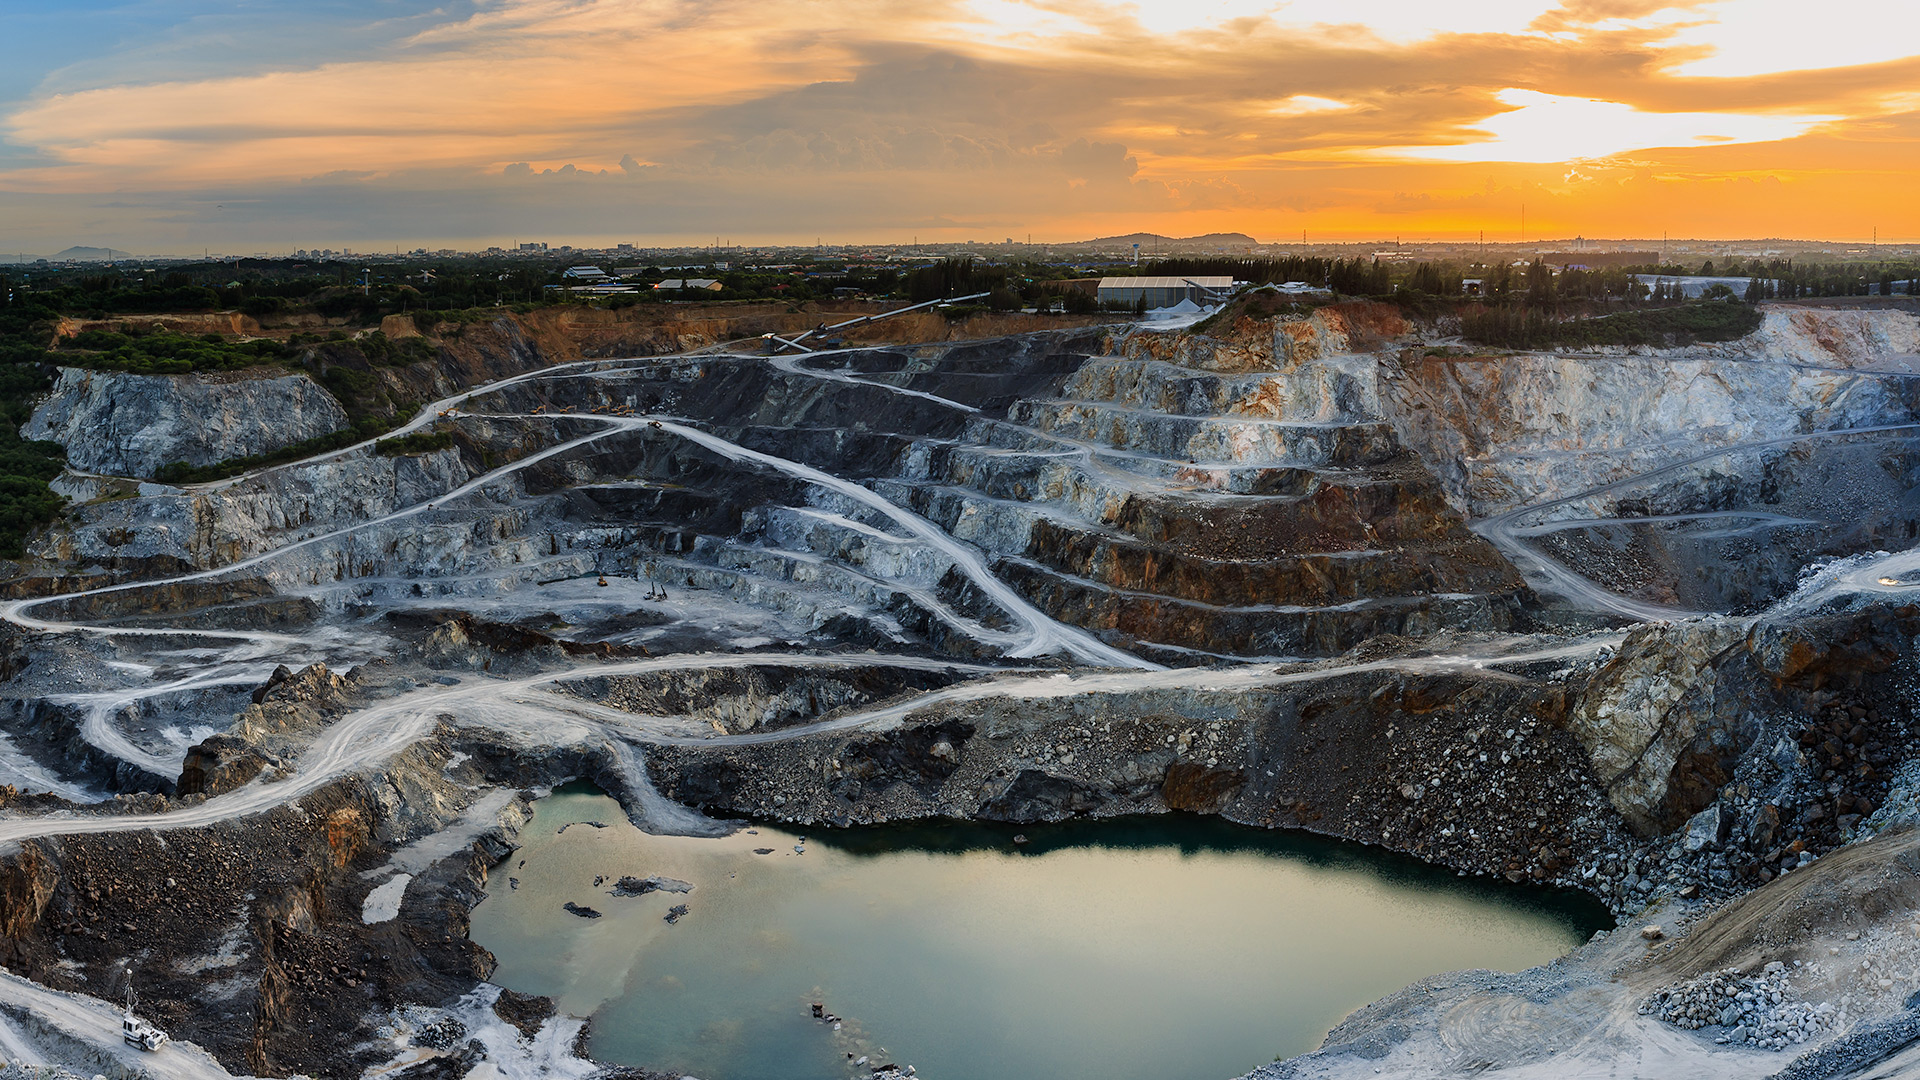 Panoramic view of a quarry during sunset